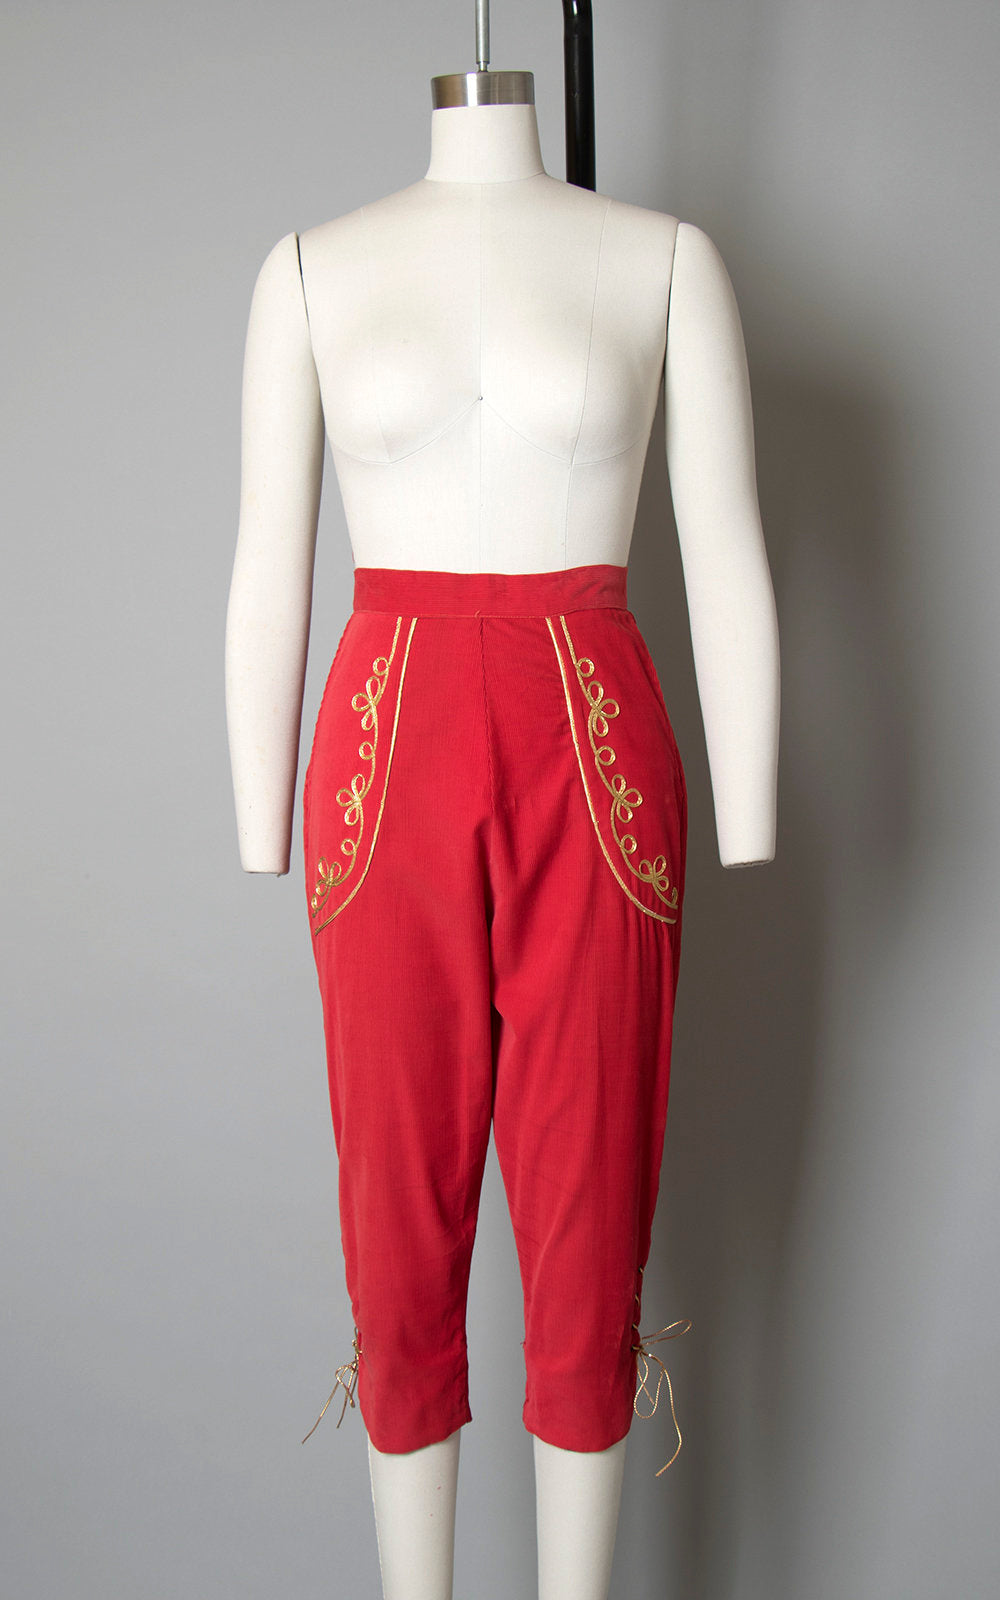 Vintage 1950s Capris | 50s Red Corduroy Gold Lace Up Pedal Pushers Matador High Waisted Pants (x-small/small)